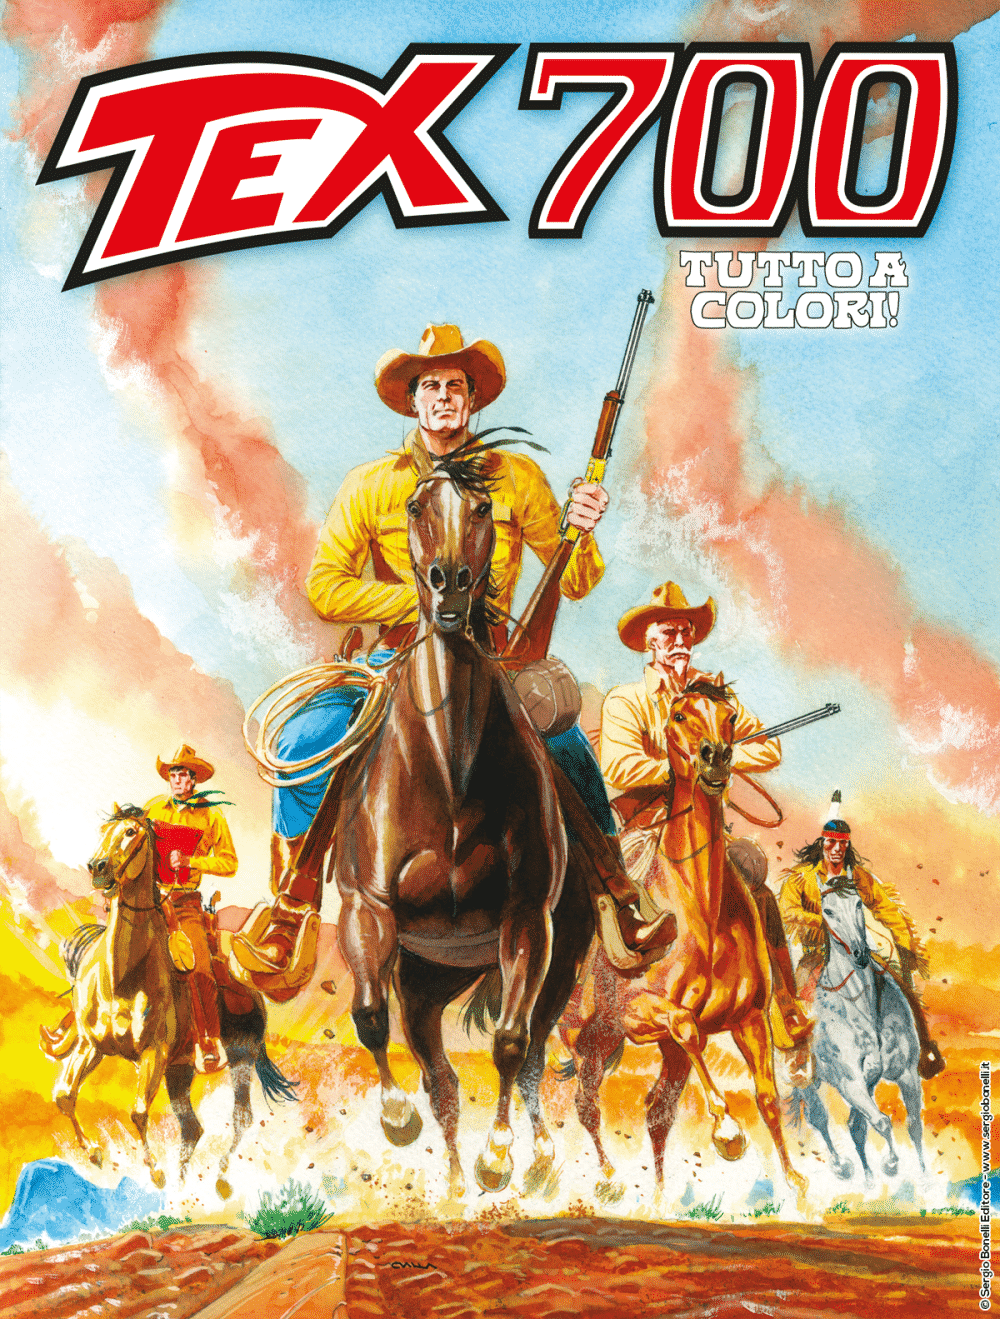 1545403198386.png-l_oro_dei_pawnee___tex_700_cover_Anteprime